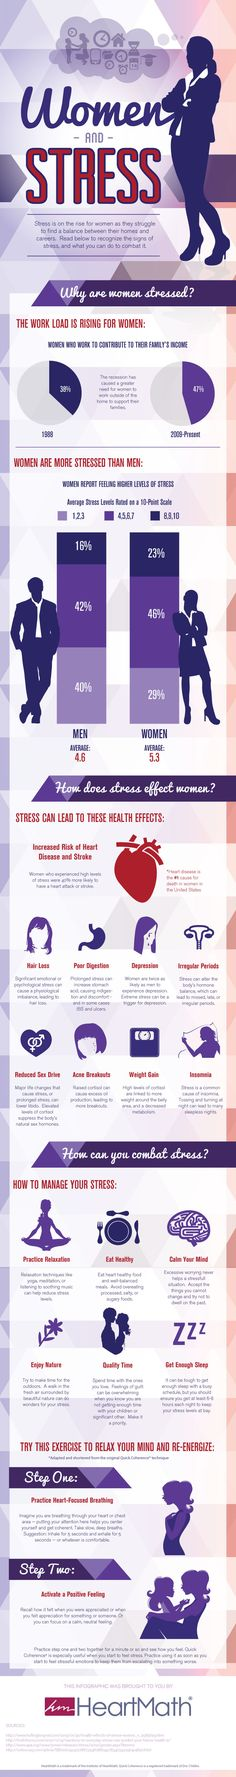 The 7 Ways That Women Can Reduce Stress (INFOGRAPHIC) - The Huffington Post